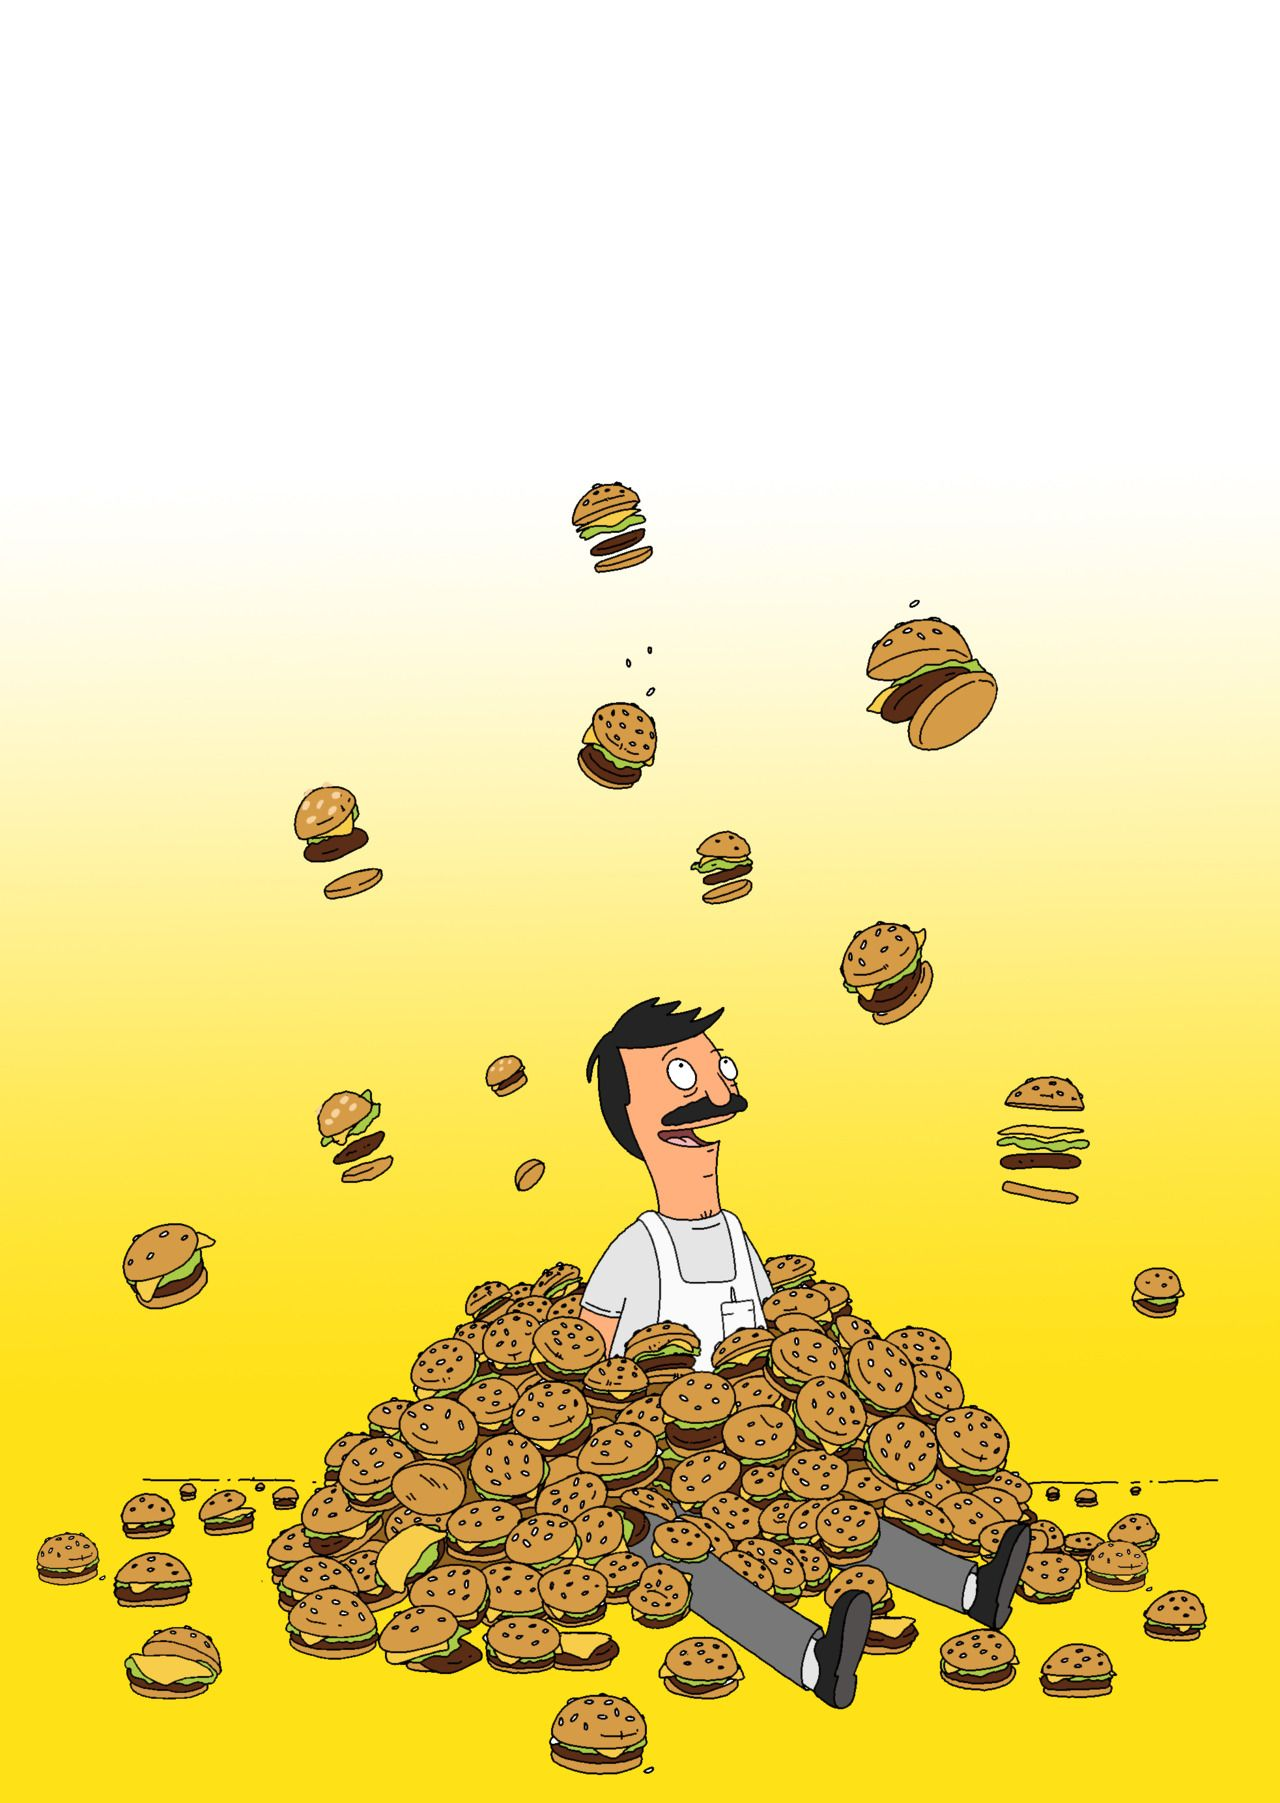 more devin roth art. enjoy as here at bob's burgers hq we prep for